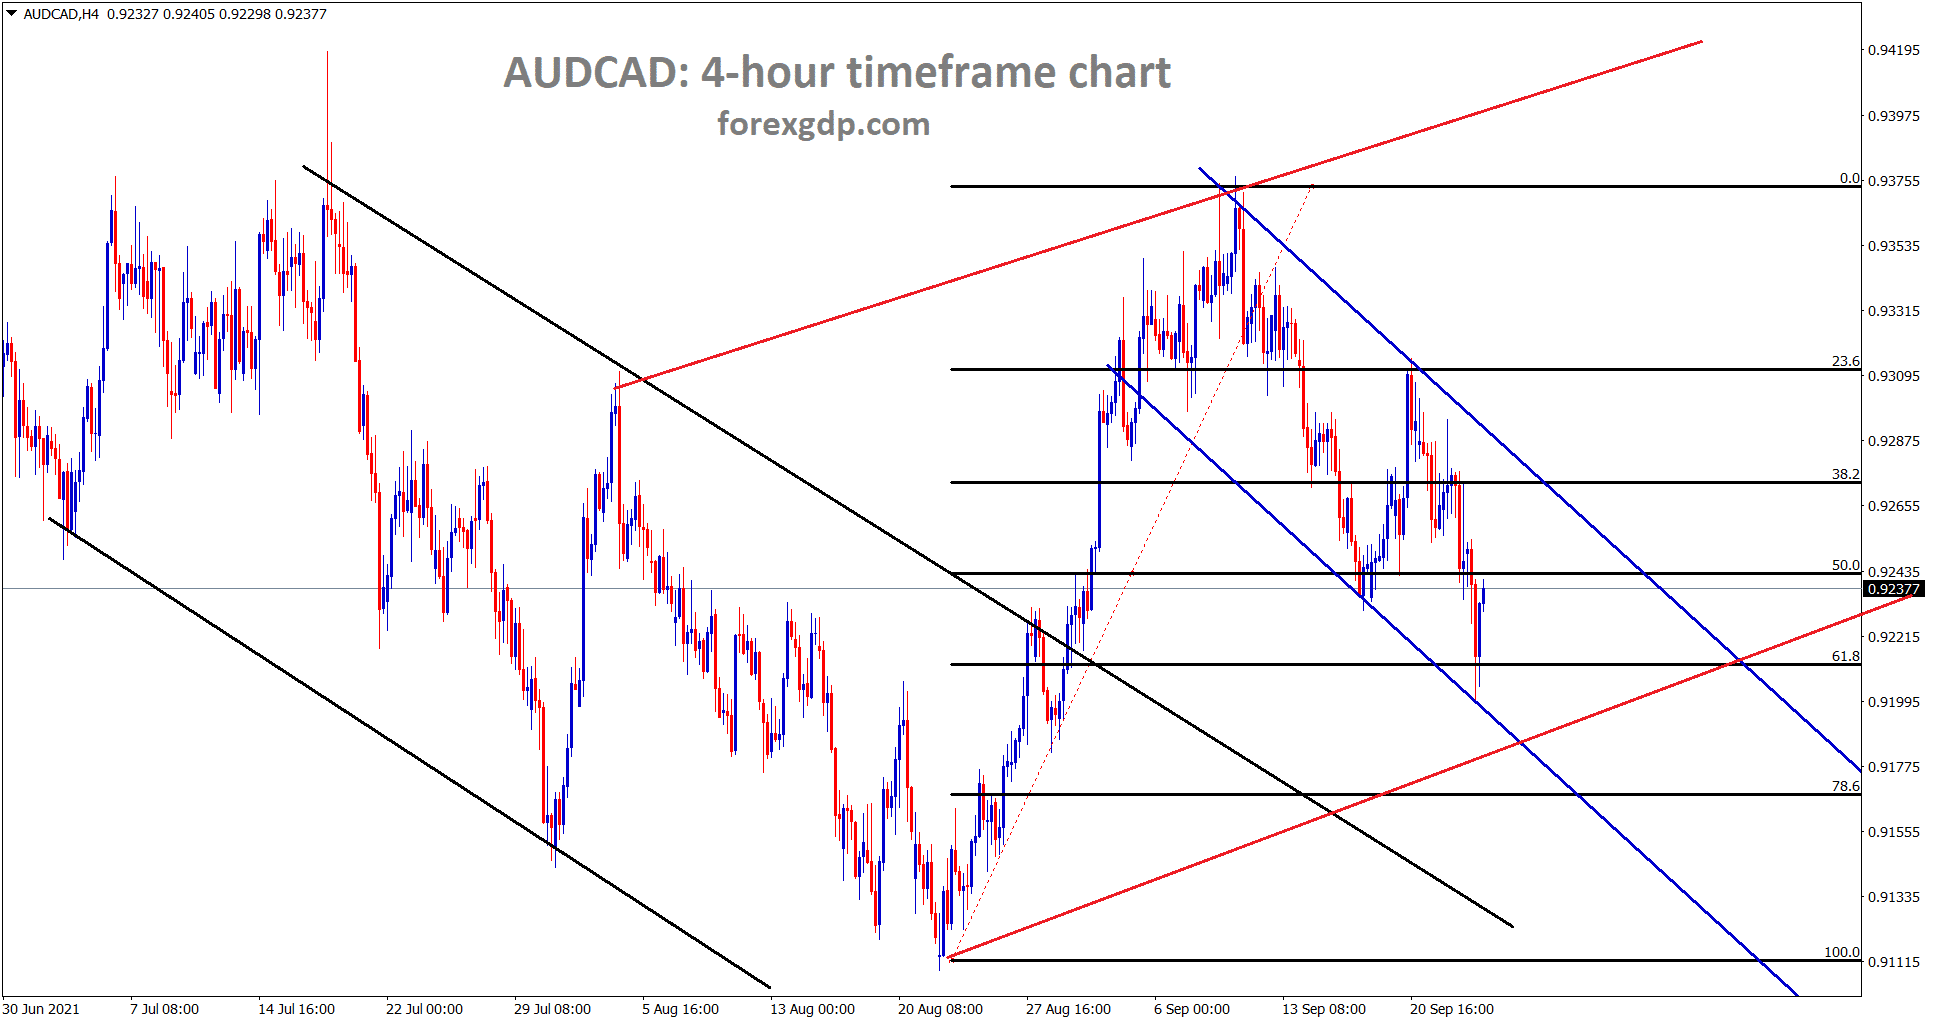 AUDCAD is moving between the channel ranges and rebounding from 61.8 level